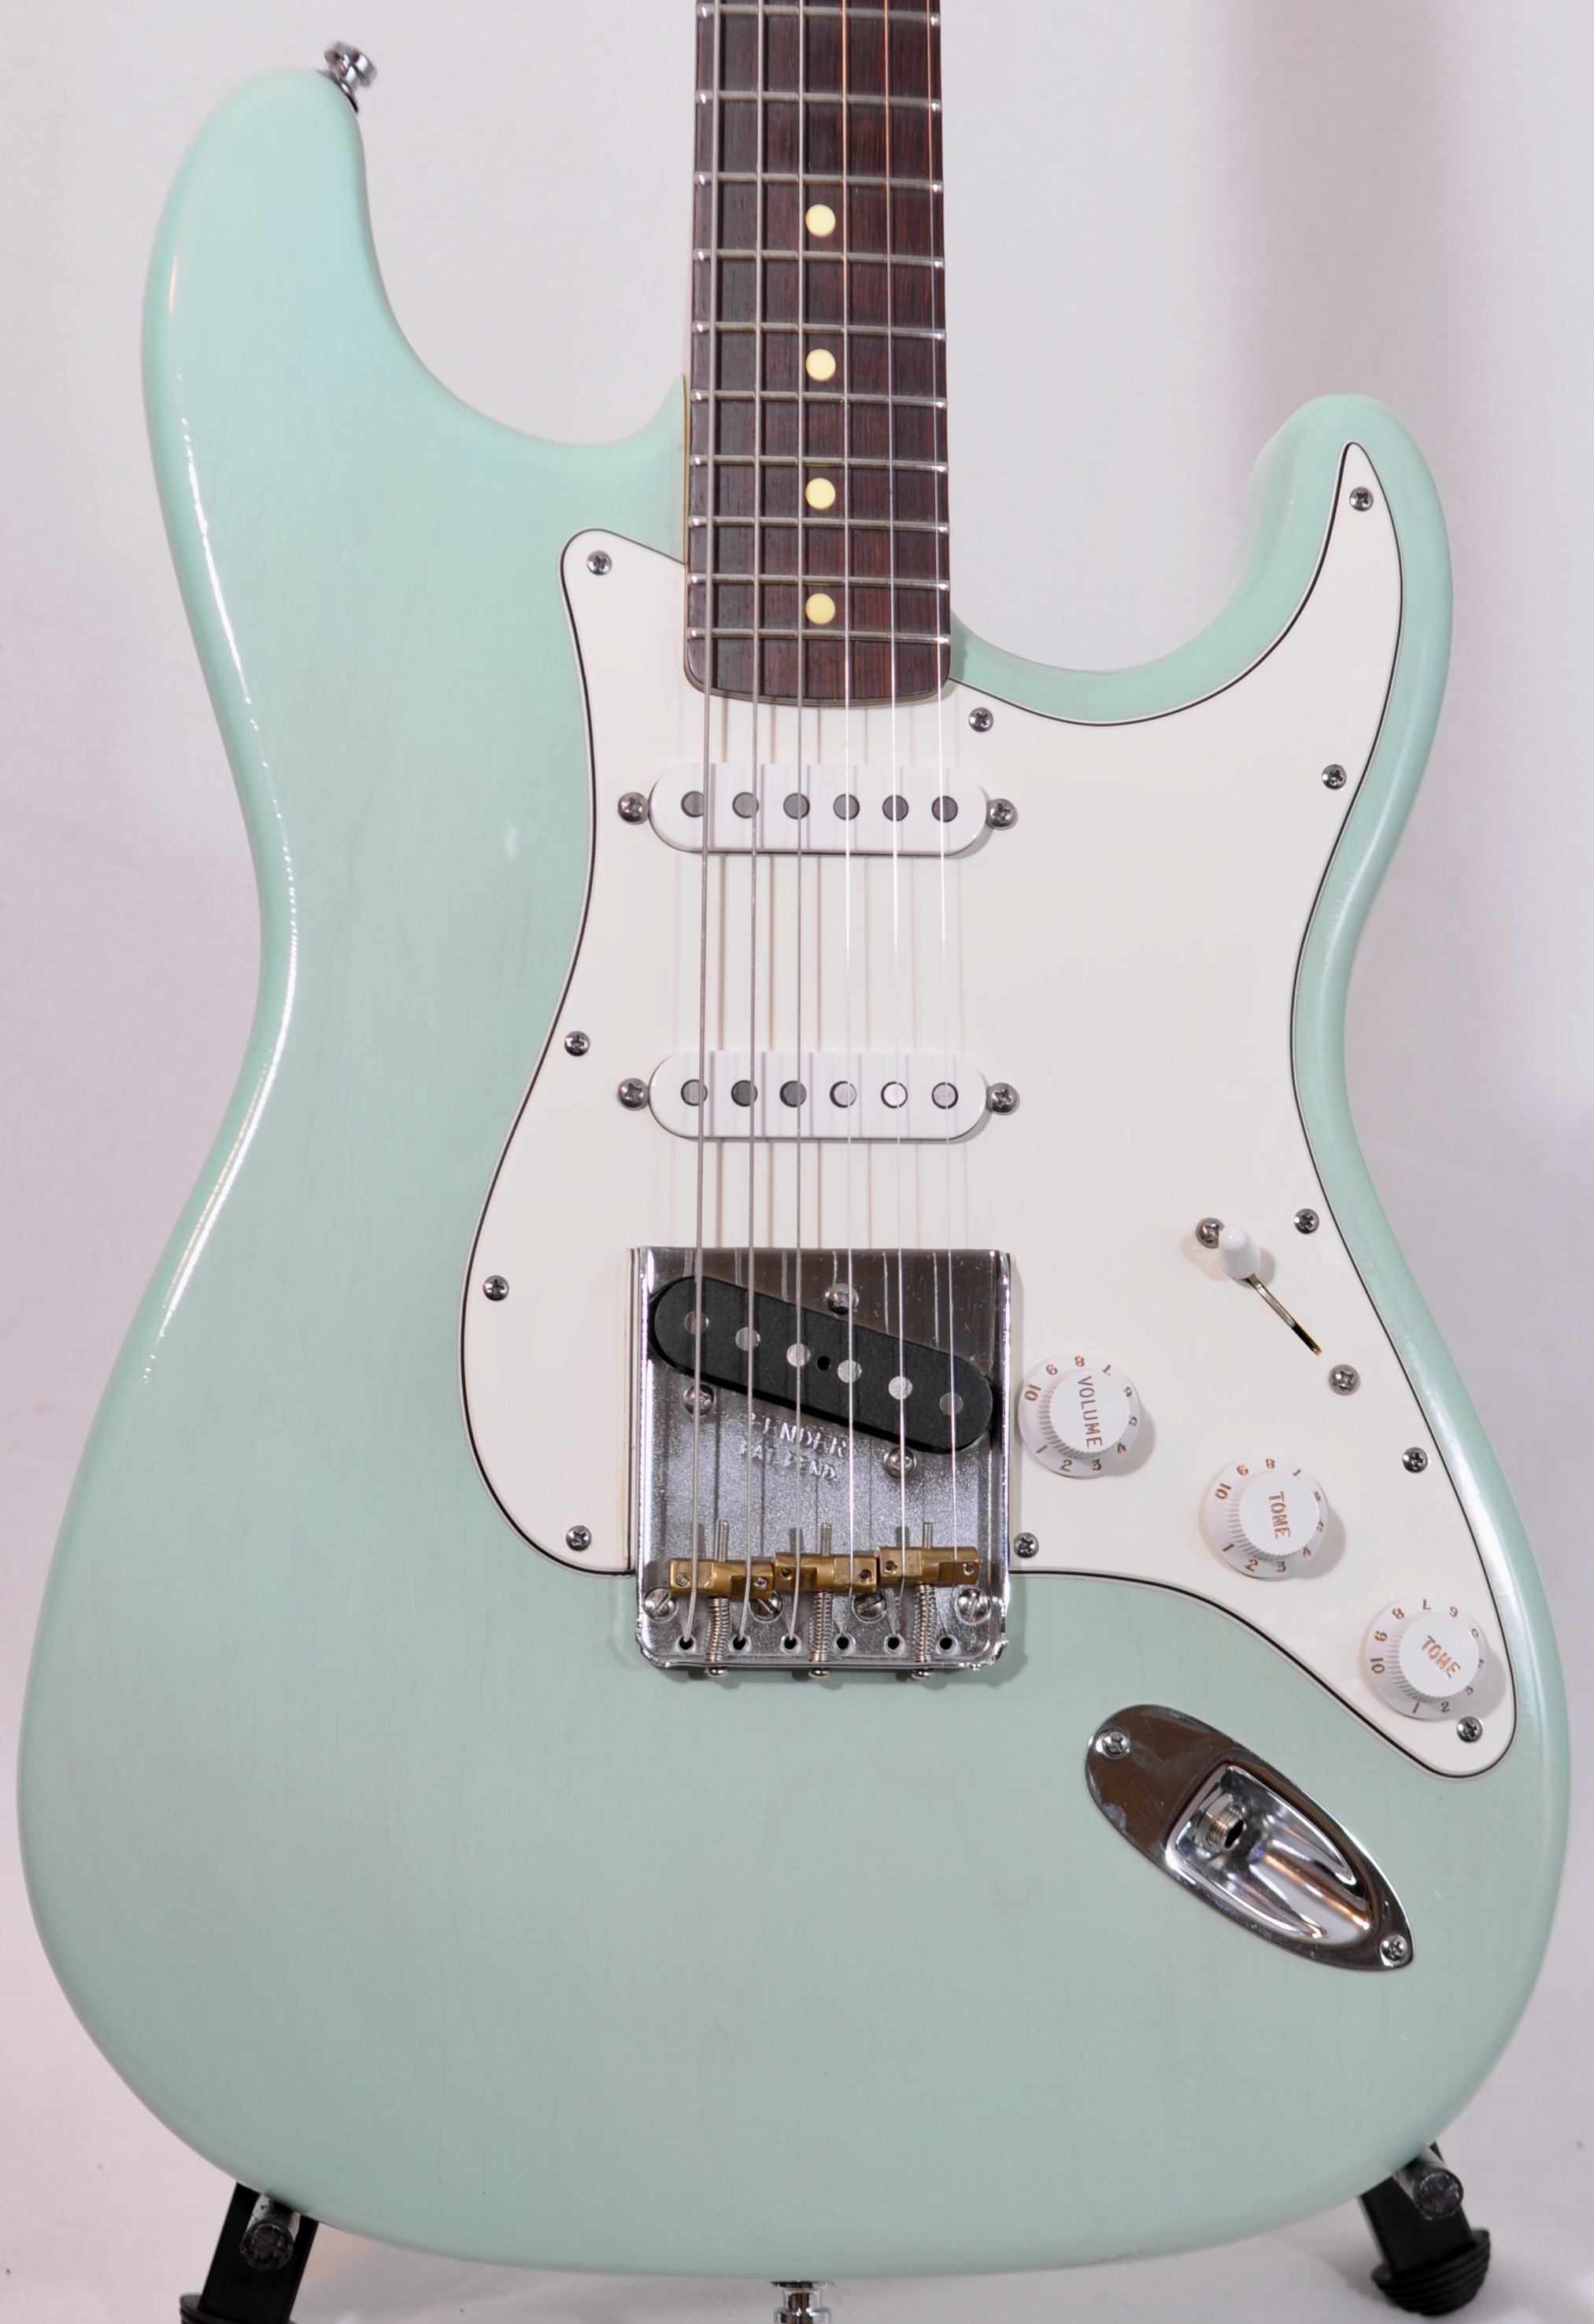 Chad Underwood Strat-Tele-Hybrid   Braz Board!  Just 6lb-5oz!